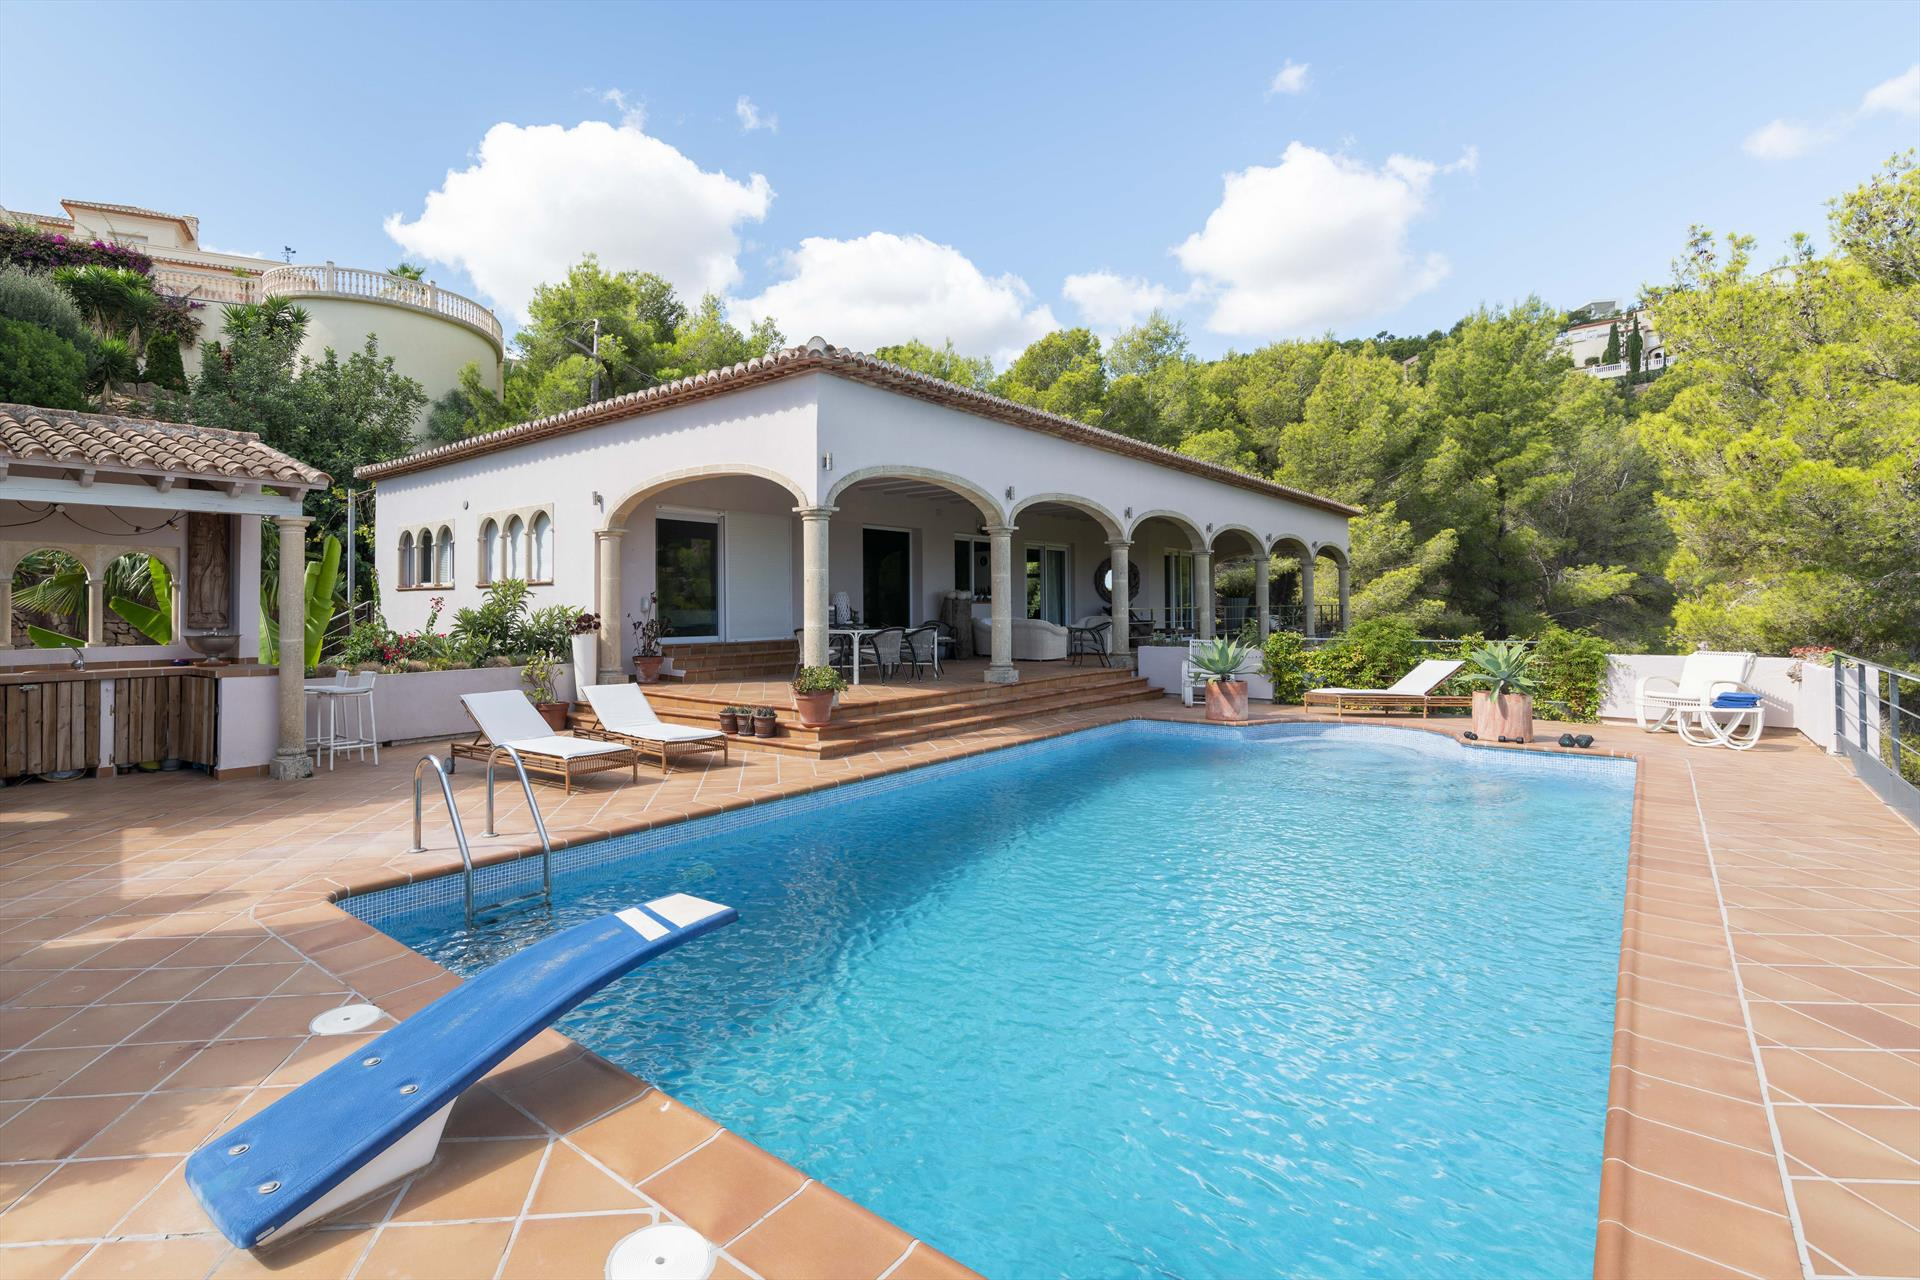 Belair, Classic and luxury villa in Denia, on the Costa Blanca, Spain with private pool for 8 persons. The villa is situated in.....